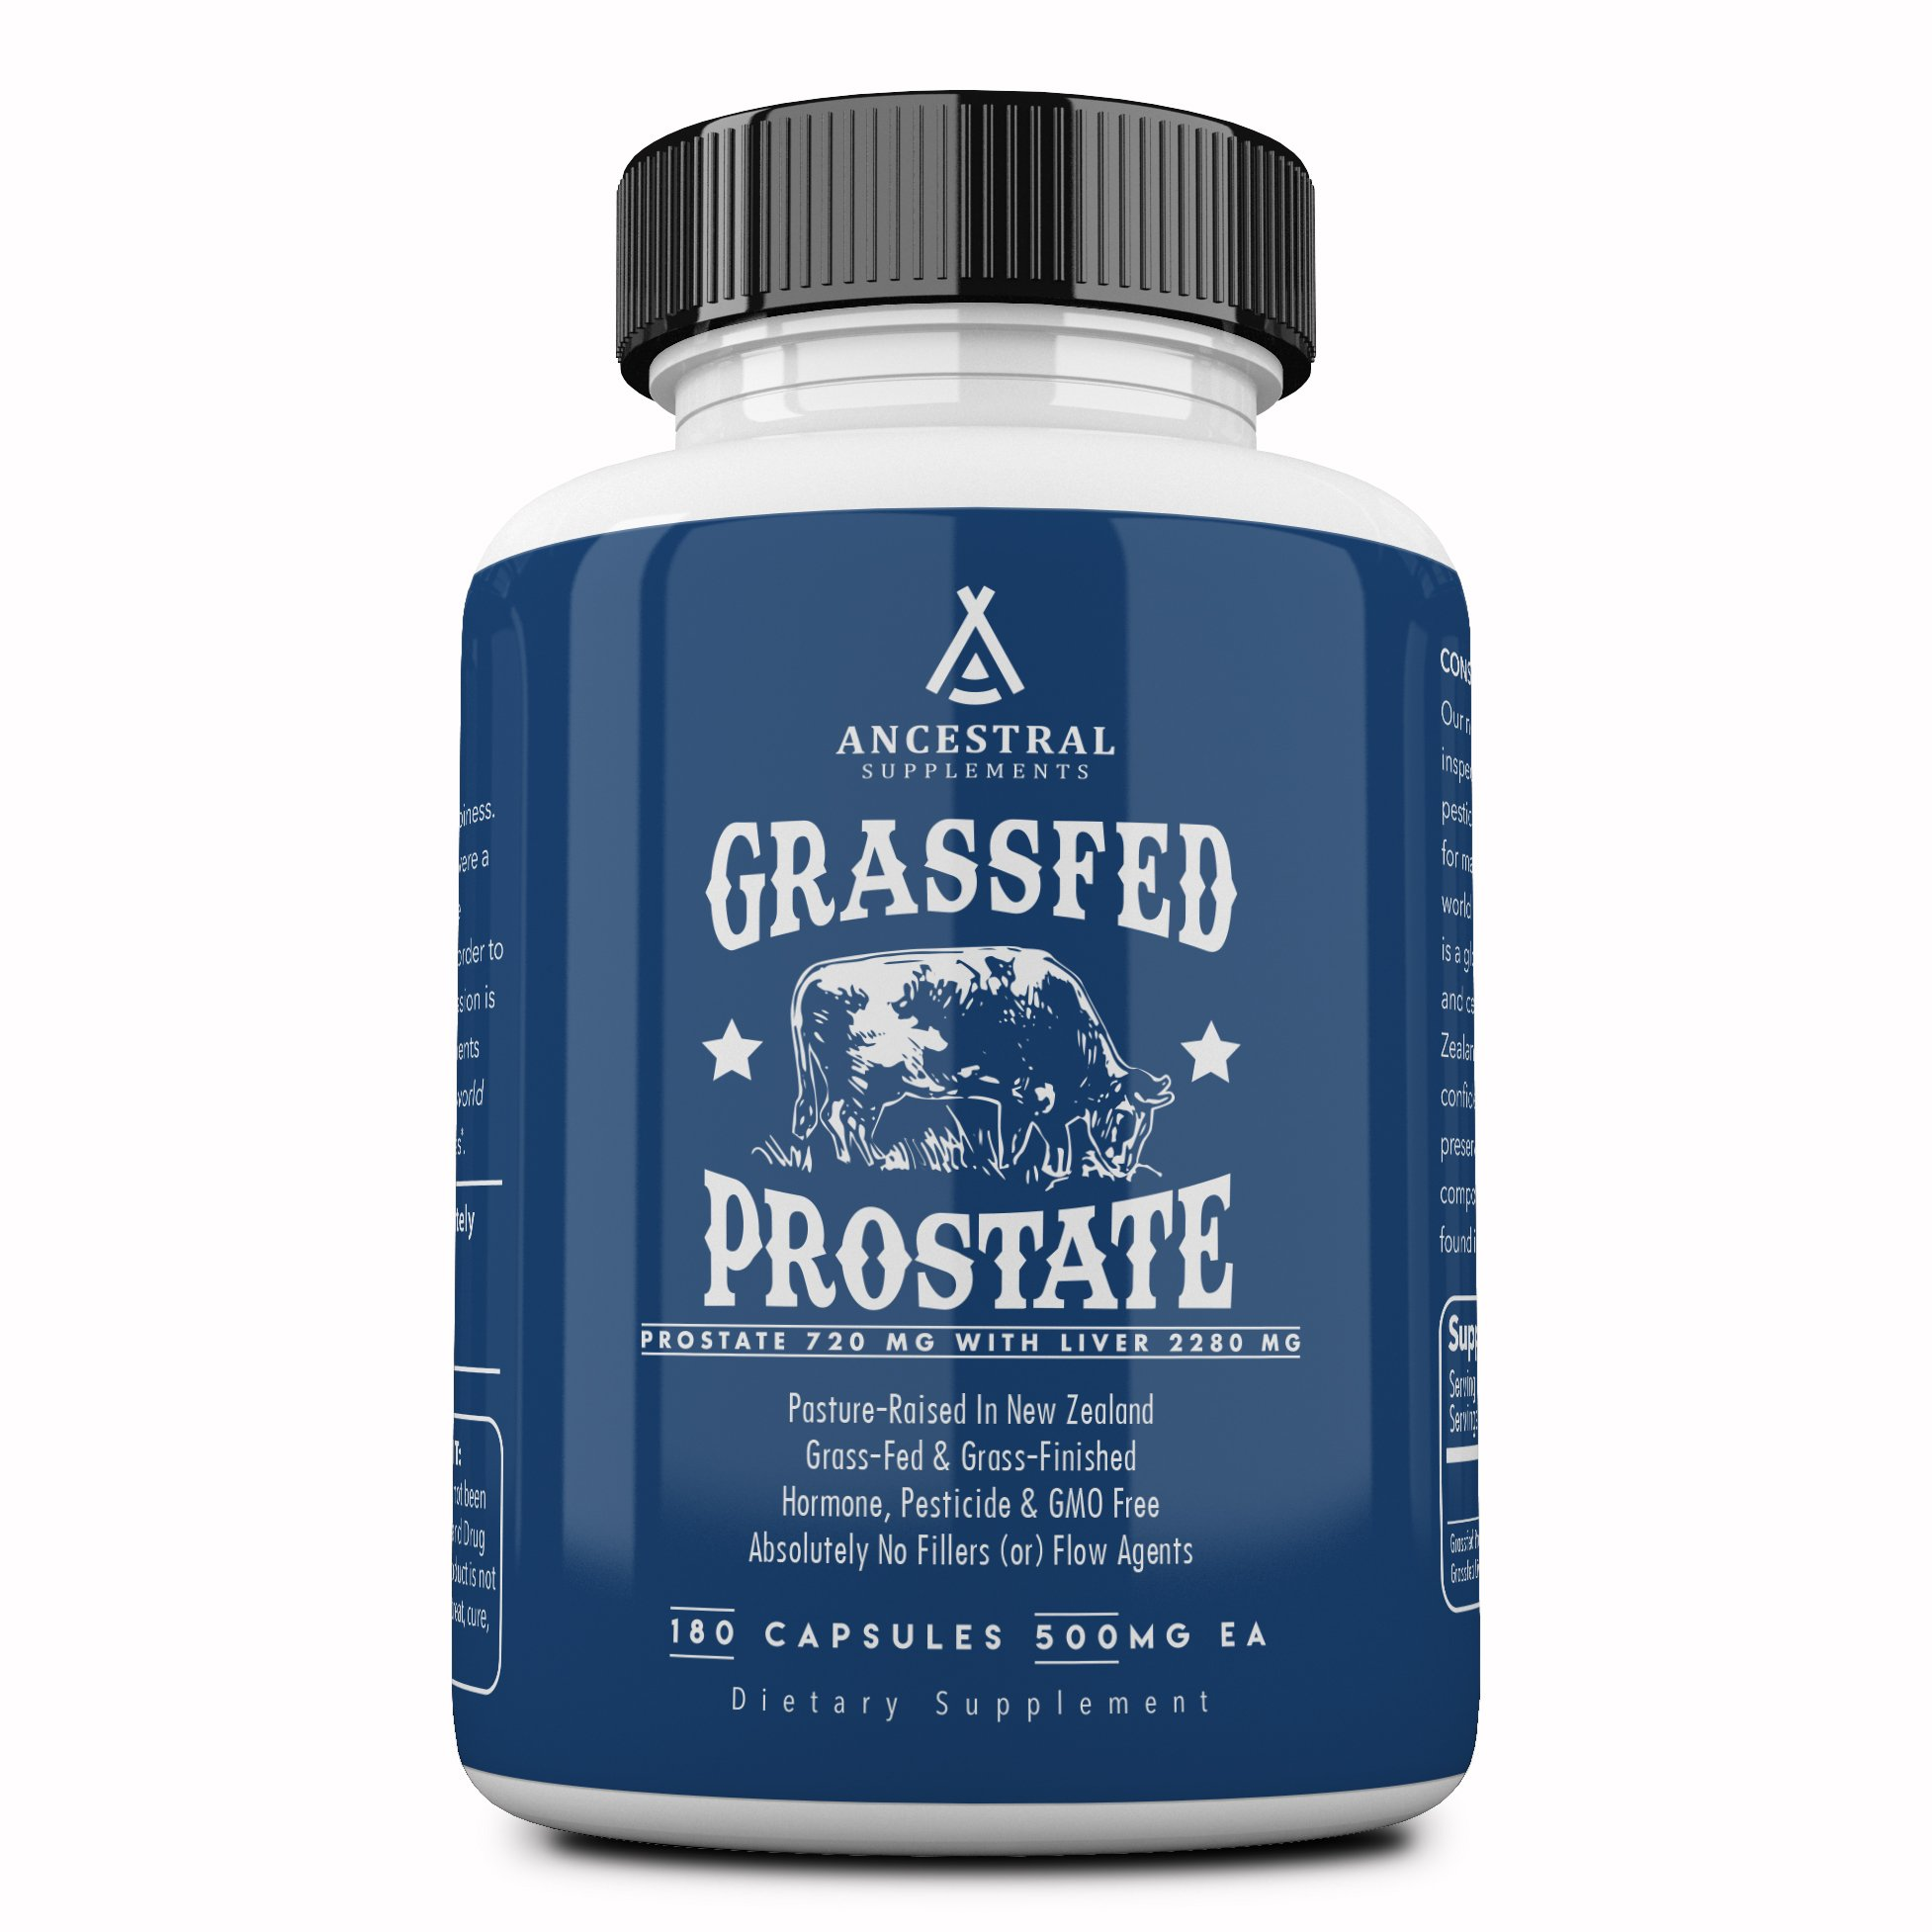 Ancestral Supplements Prostate (with Desiccated Liver) - Supports Prostate Health (180 Capsules)